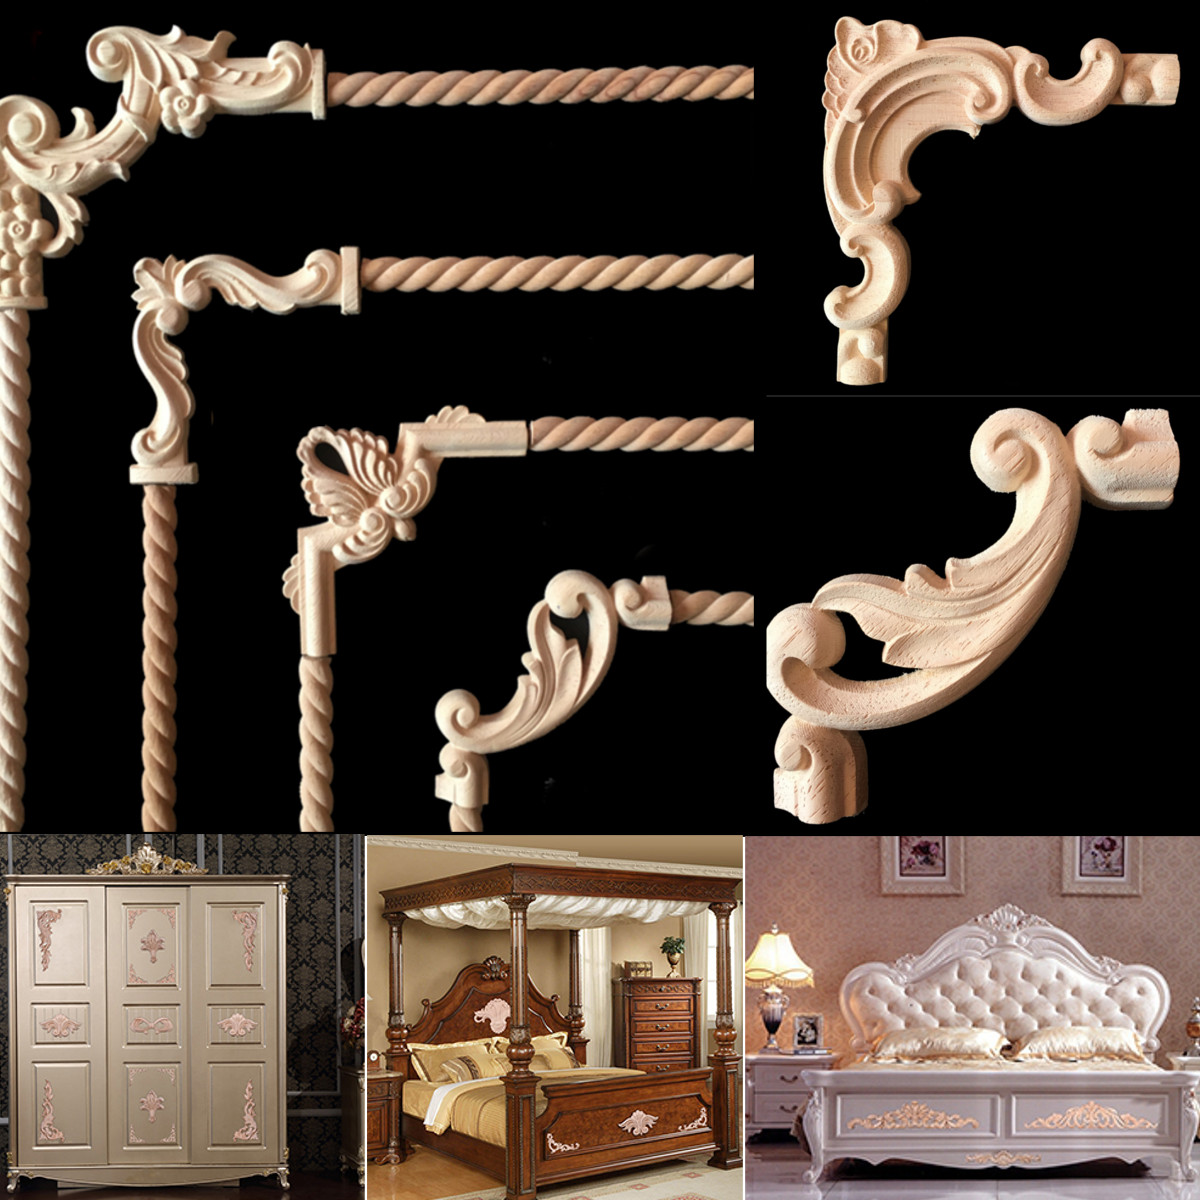 Wood Carved Corner Onlay Applique Frame Unpainted Furniture Decoration Wall Door Furniture Woodcarving Decorative Crafts 1pcs